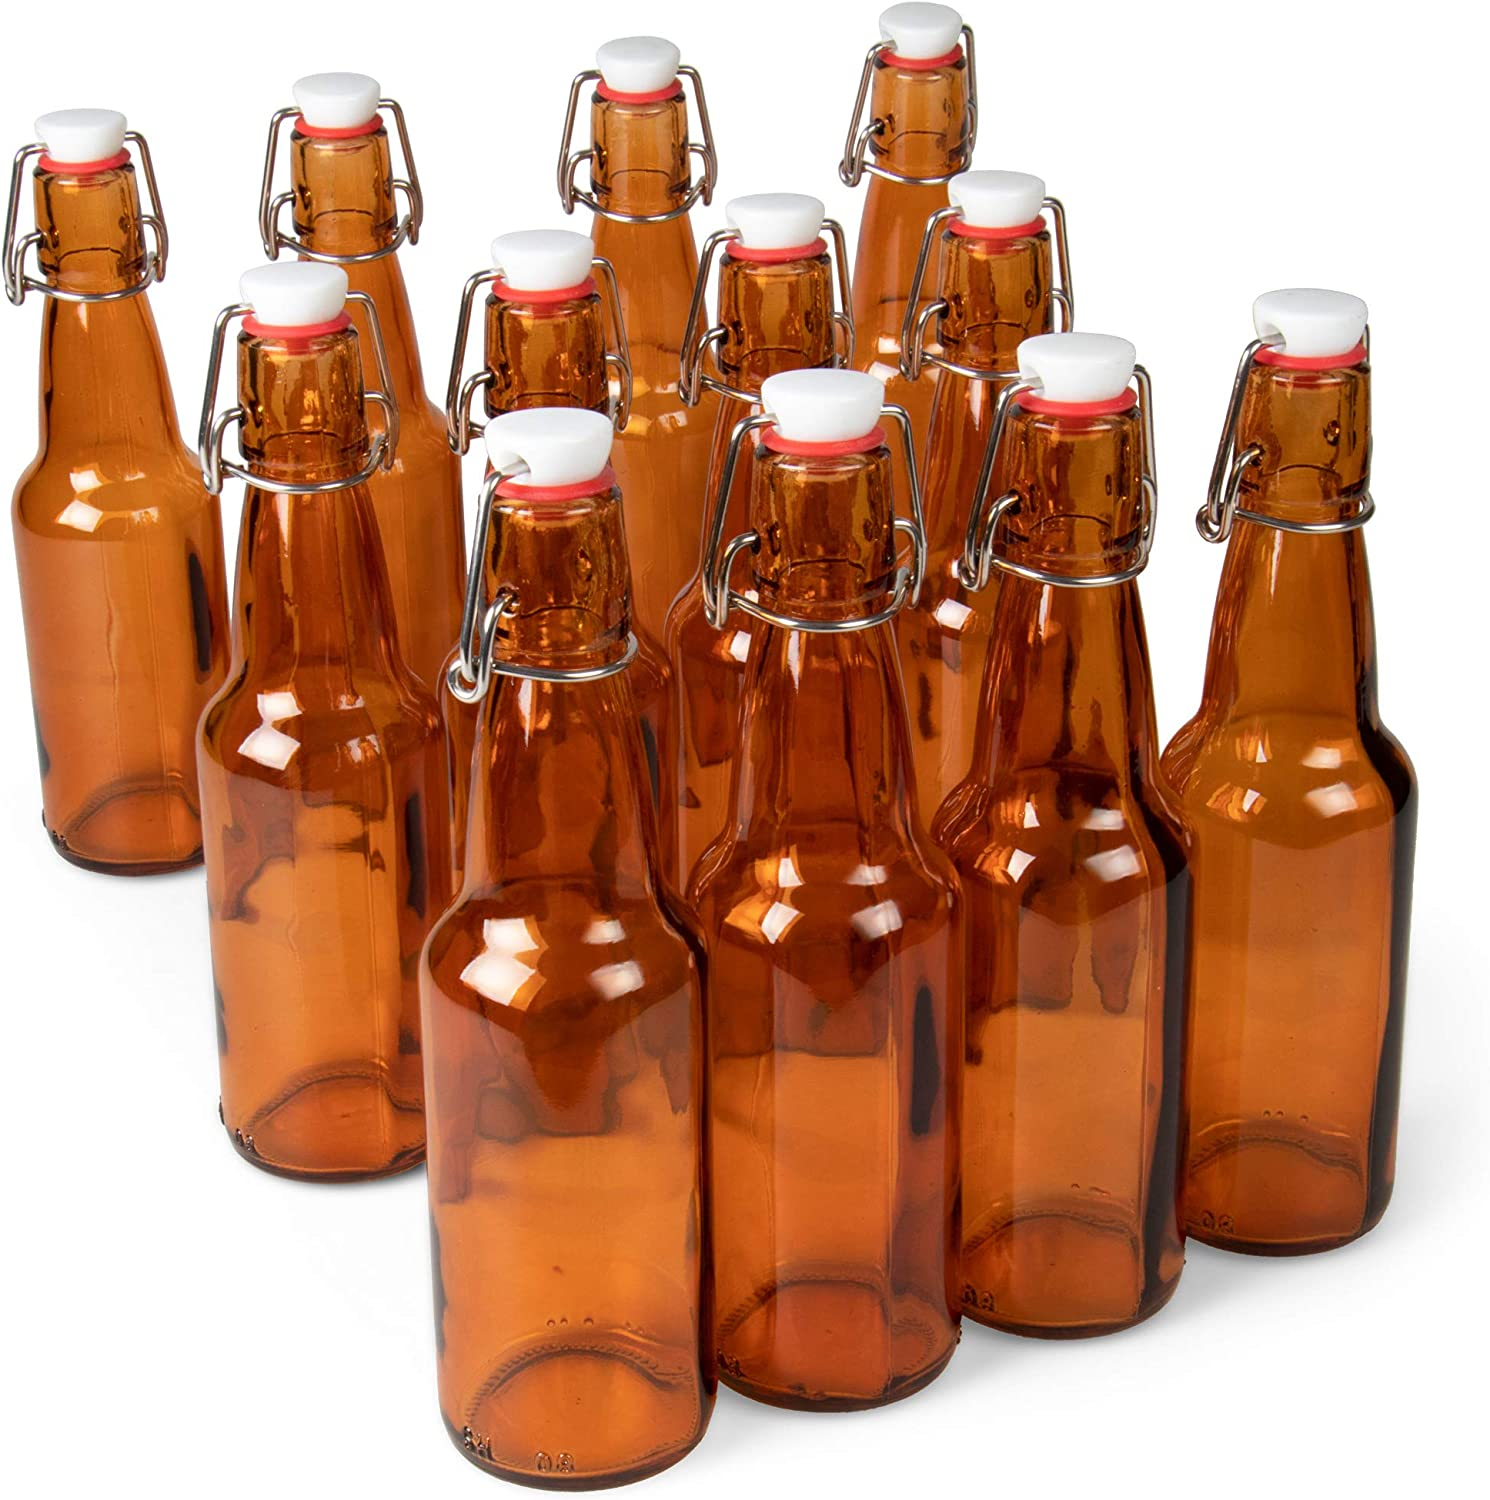 11 oz. Amber Glass Grolsch Beer Bottles – Airtight Seal with Swing Top/Flip Top Stoppers - Supplies for Home Brewing & Fermenting of Alcohol, Kombucha Tea, Wine, Homemade Soda (12-pack)